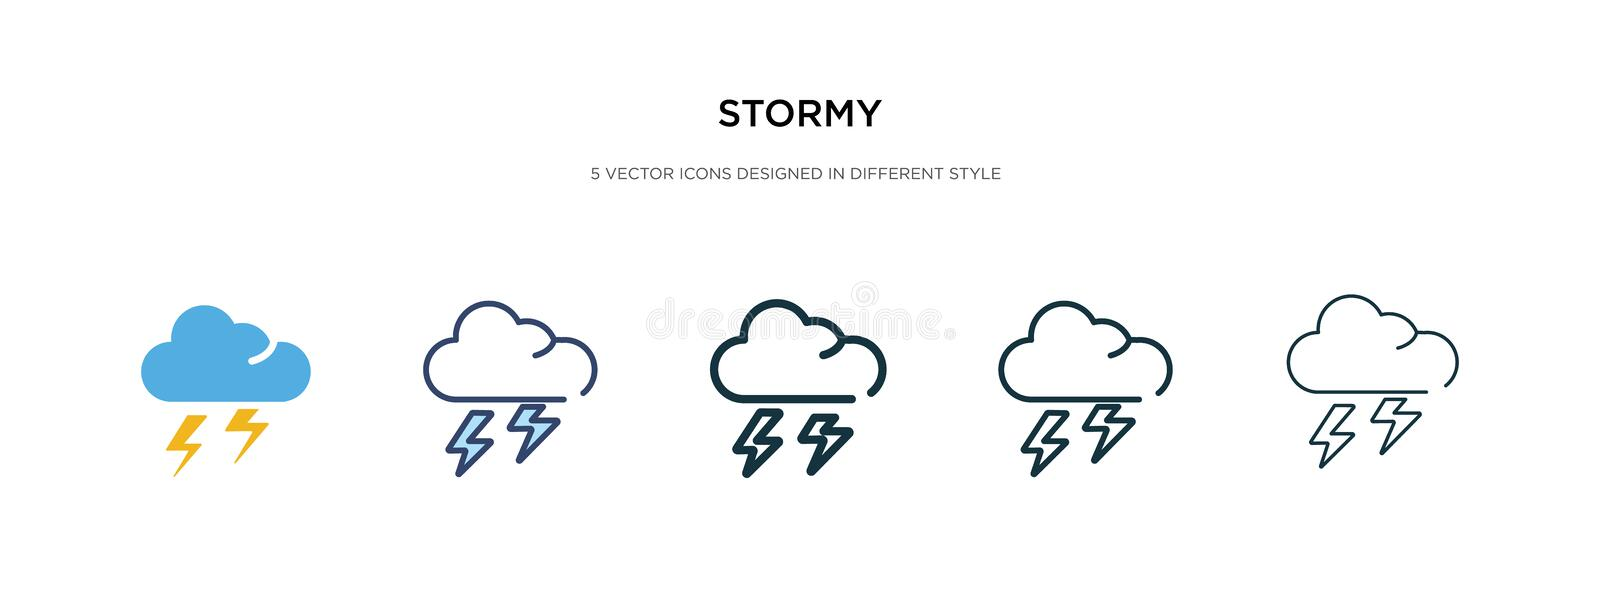 Stormy icon in different style vector illustration. two colored and black stormy vector icons designed in filled, outline, line royalty free illustration